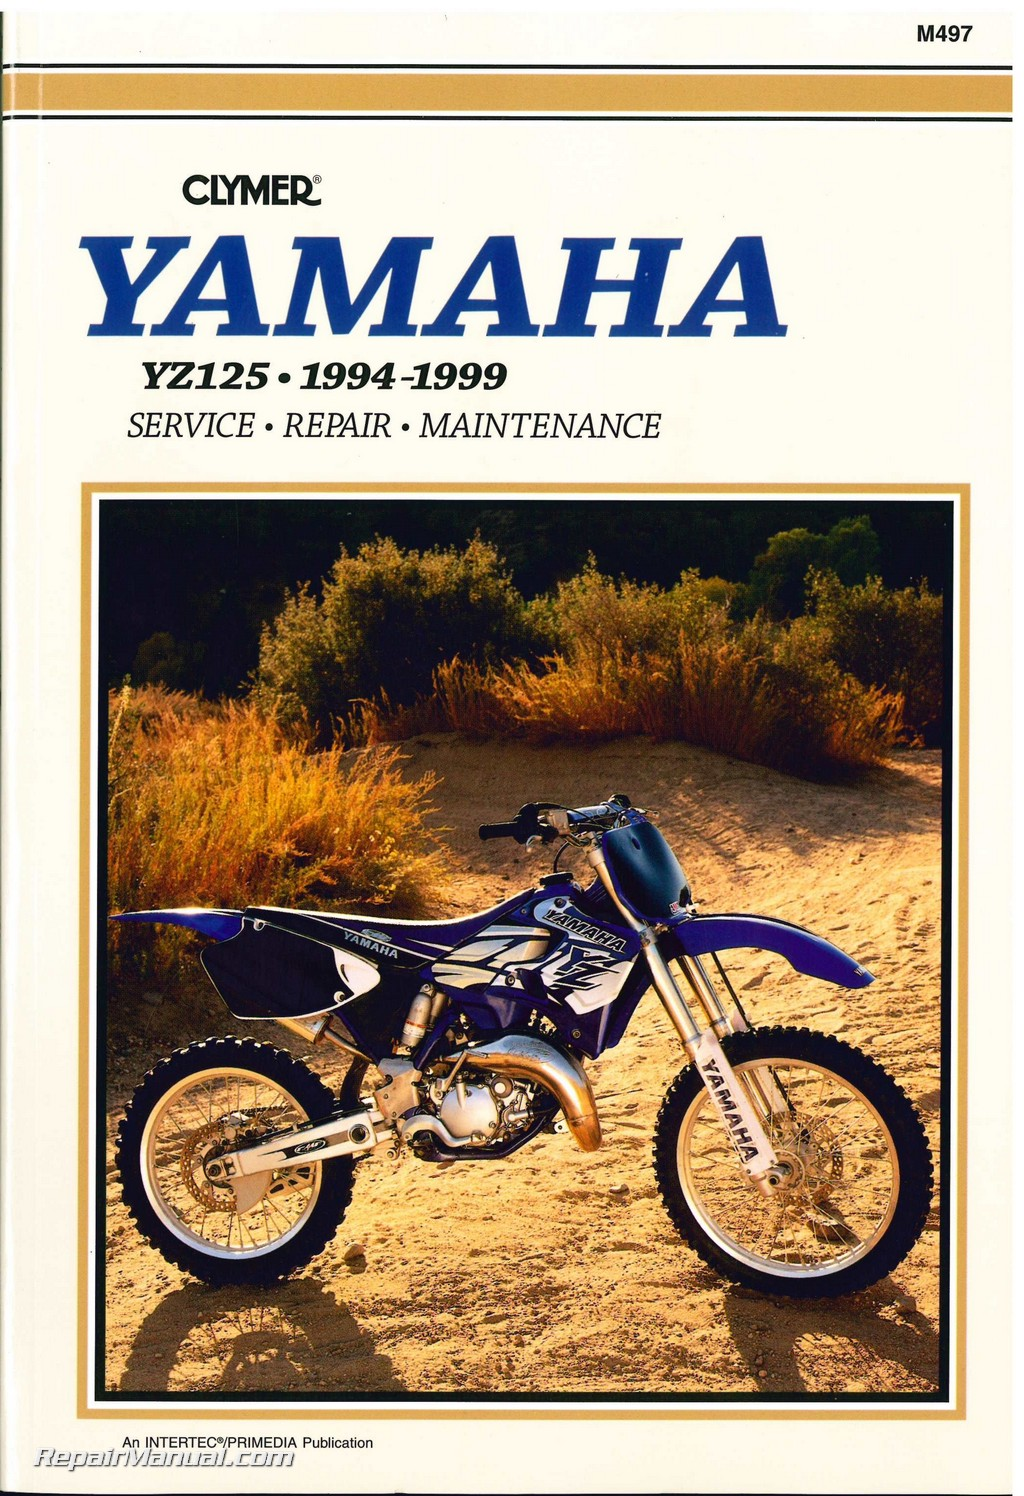 Yamaha yz-125-t1 2005 service repair workshop manual download man.